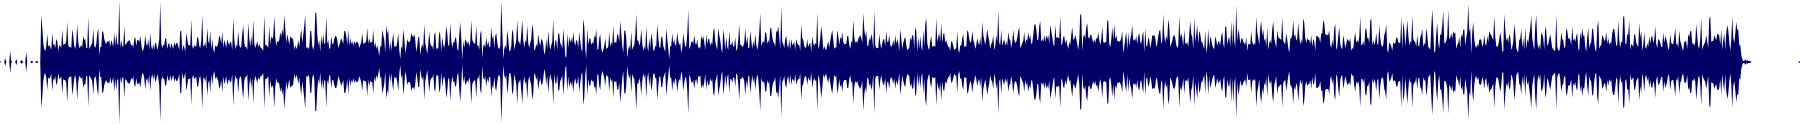 waveform of track #73688